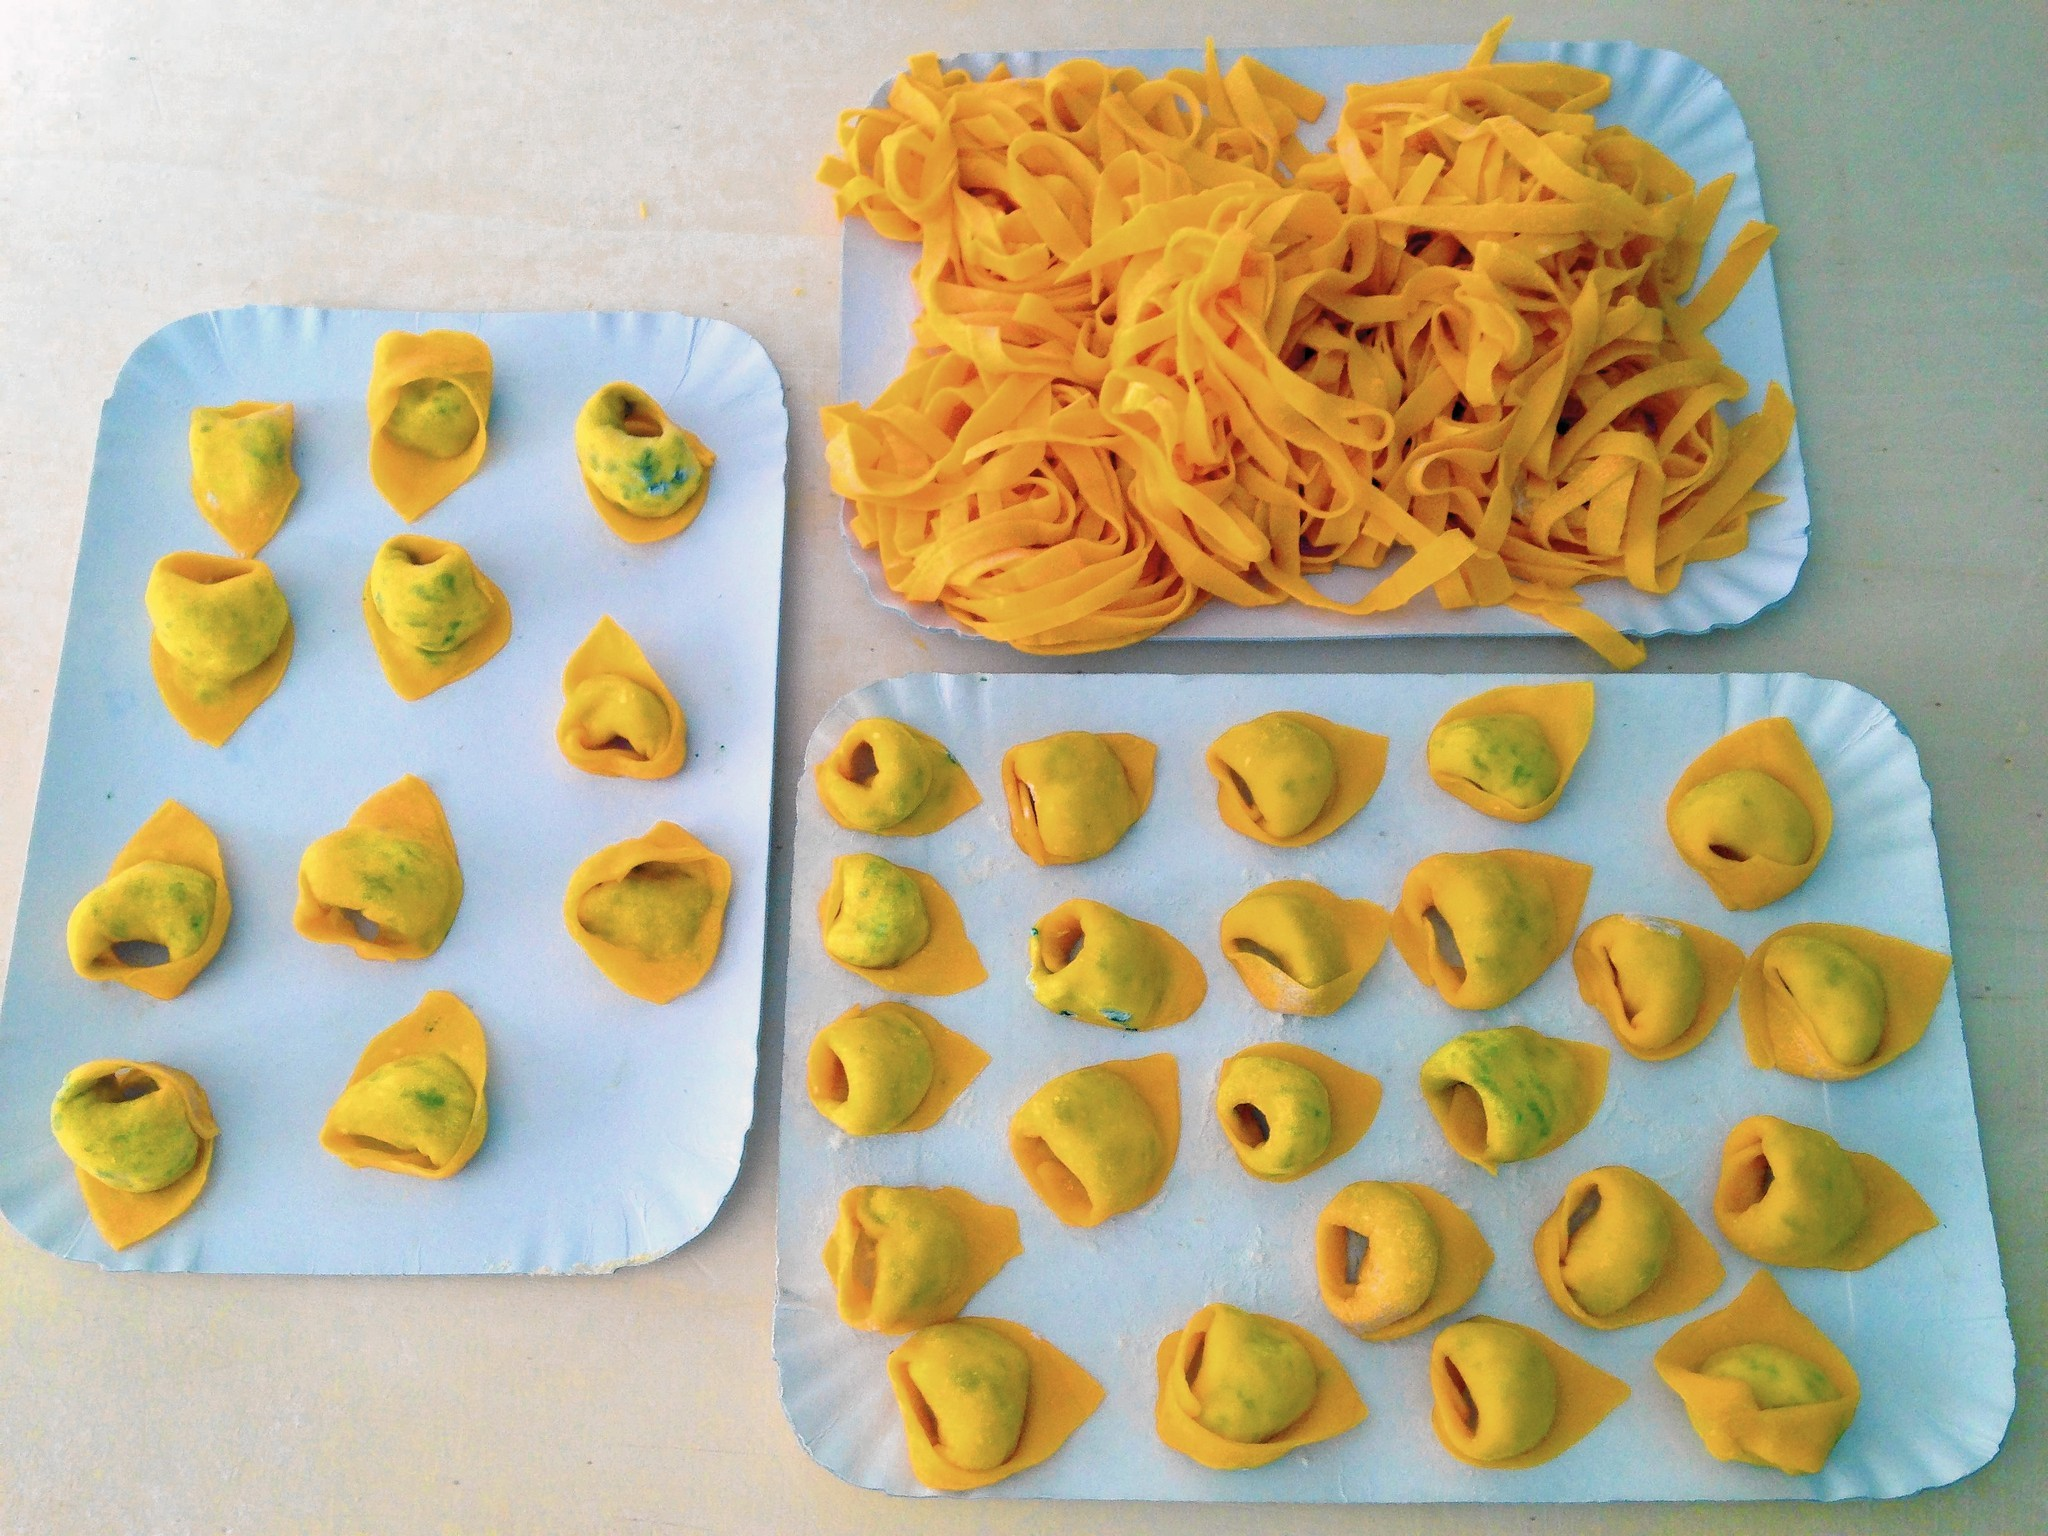 Italian cooks take visitors into their homes to show them the pasta ropes